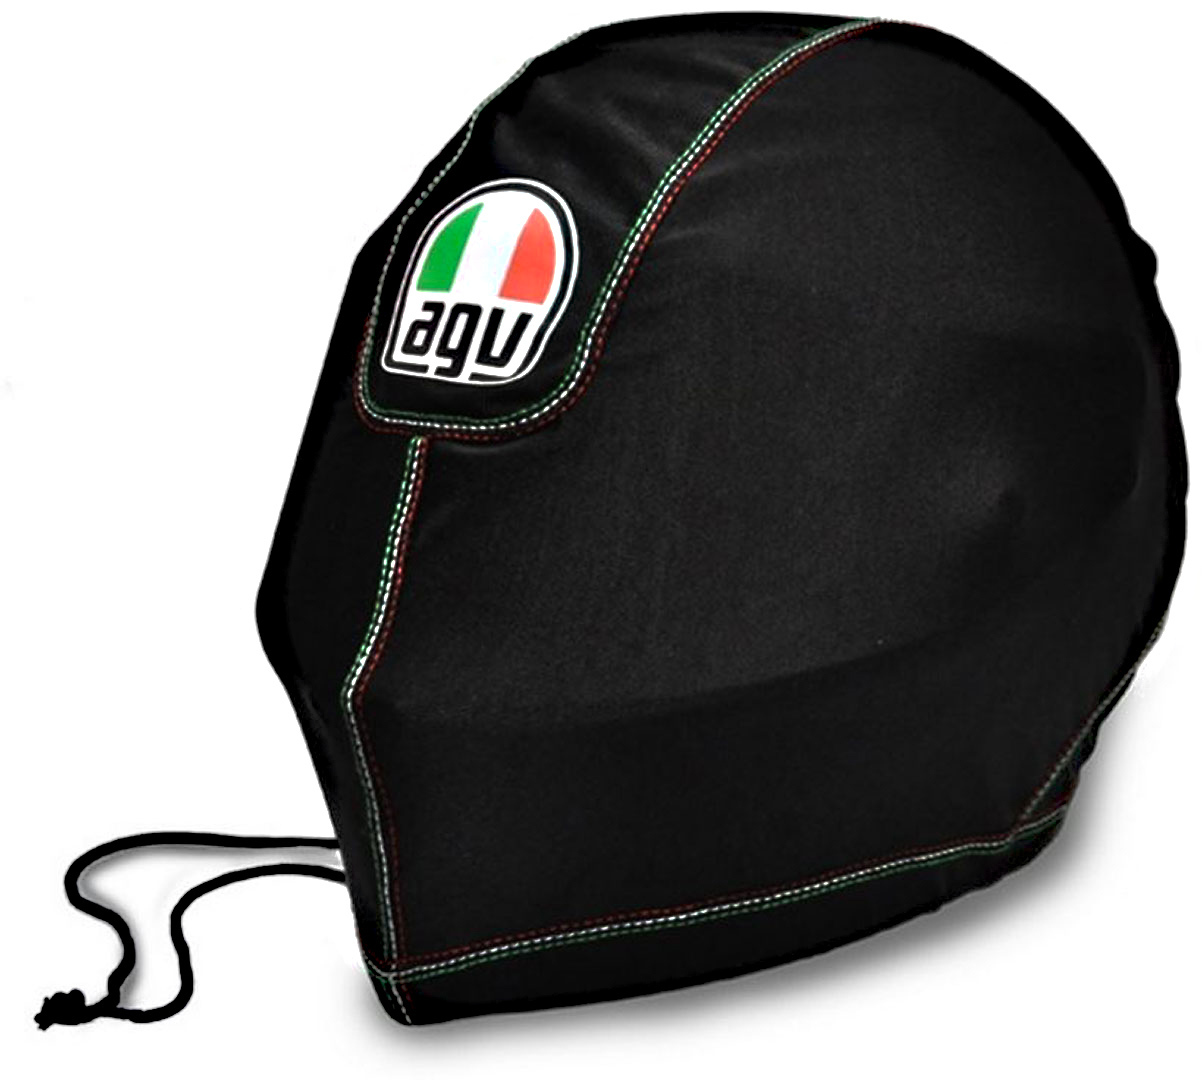 agv pista gp corsa helmet bag buy cheap fc moto. Black Bedroom Furniture Sets. Home Design Ideas